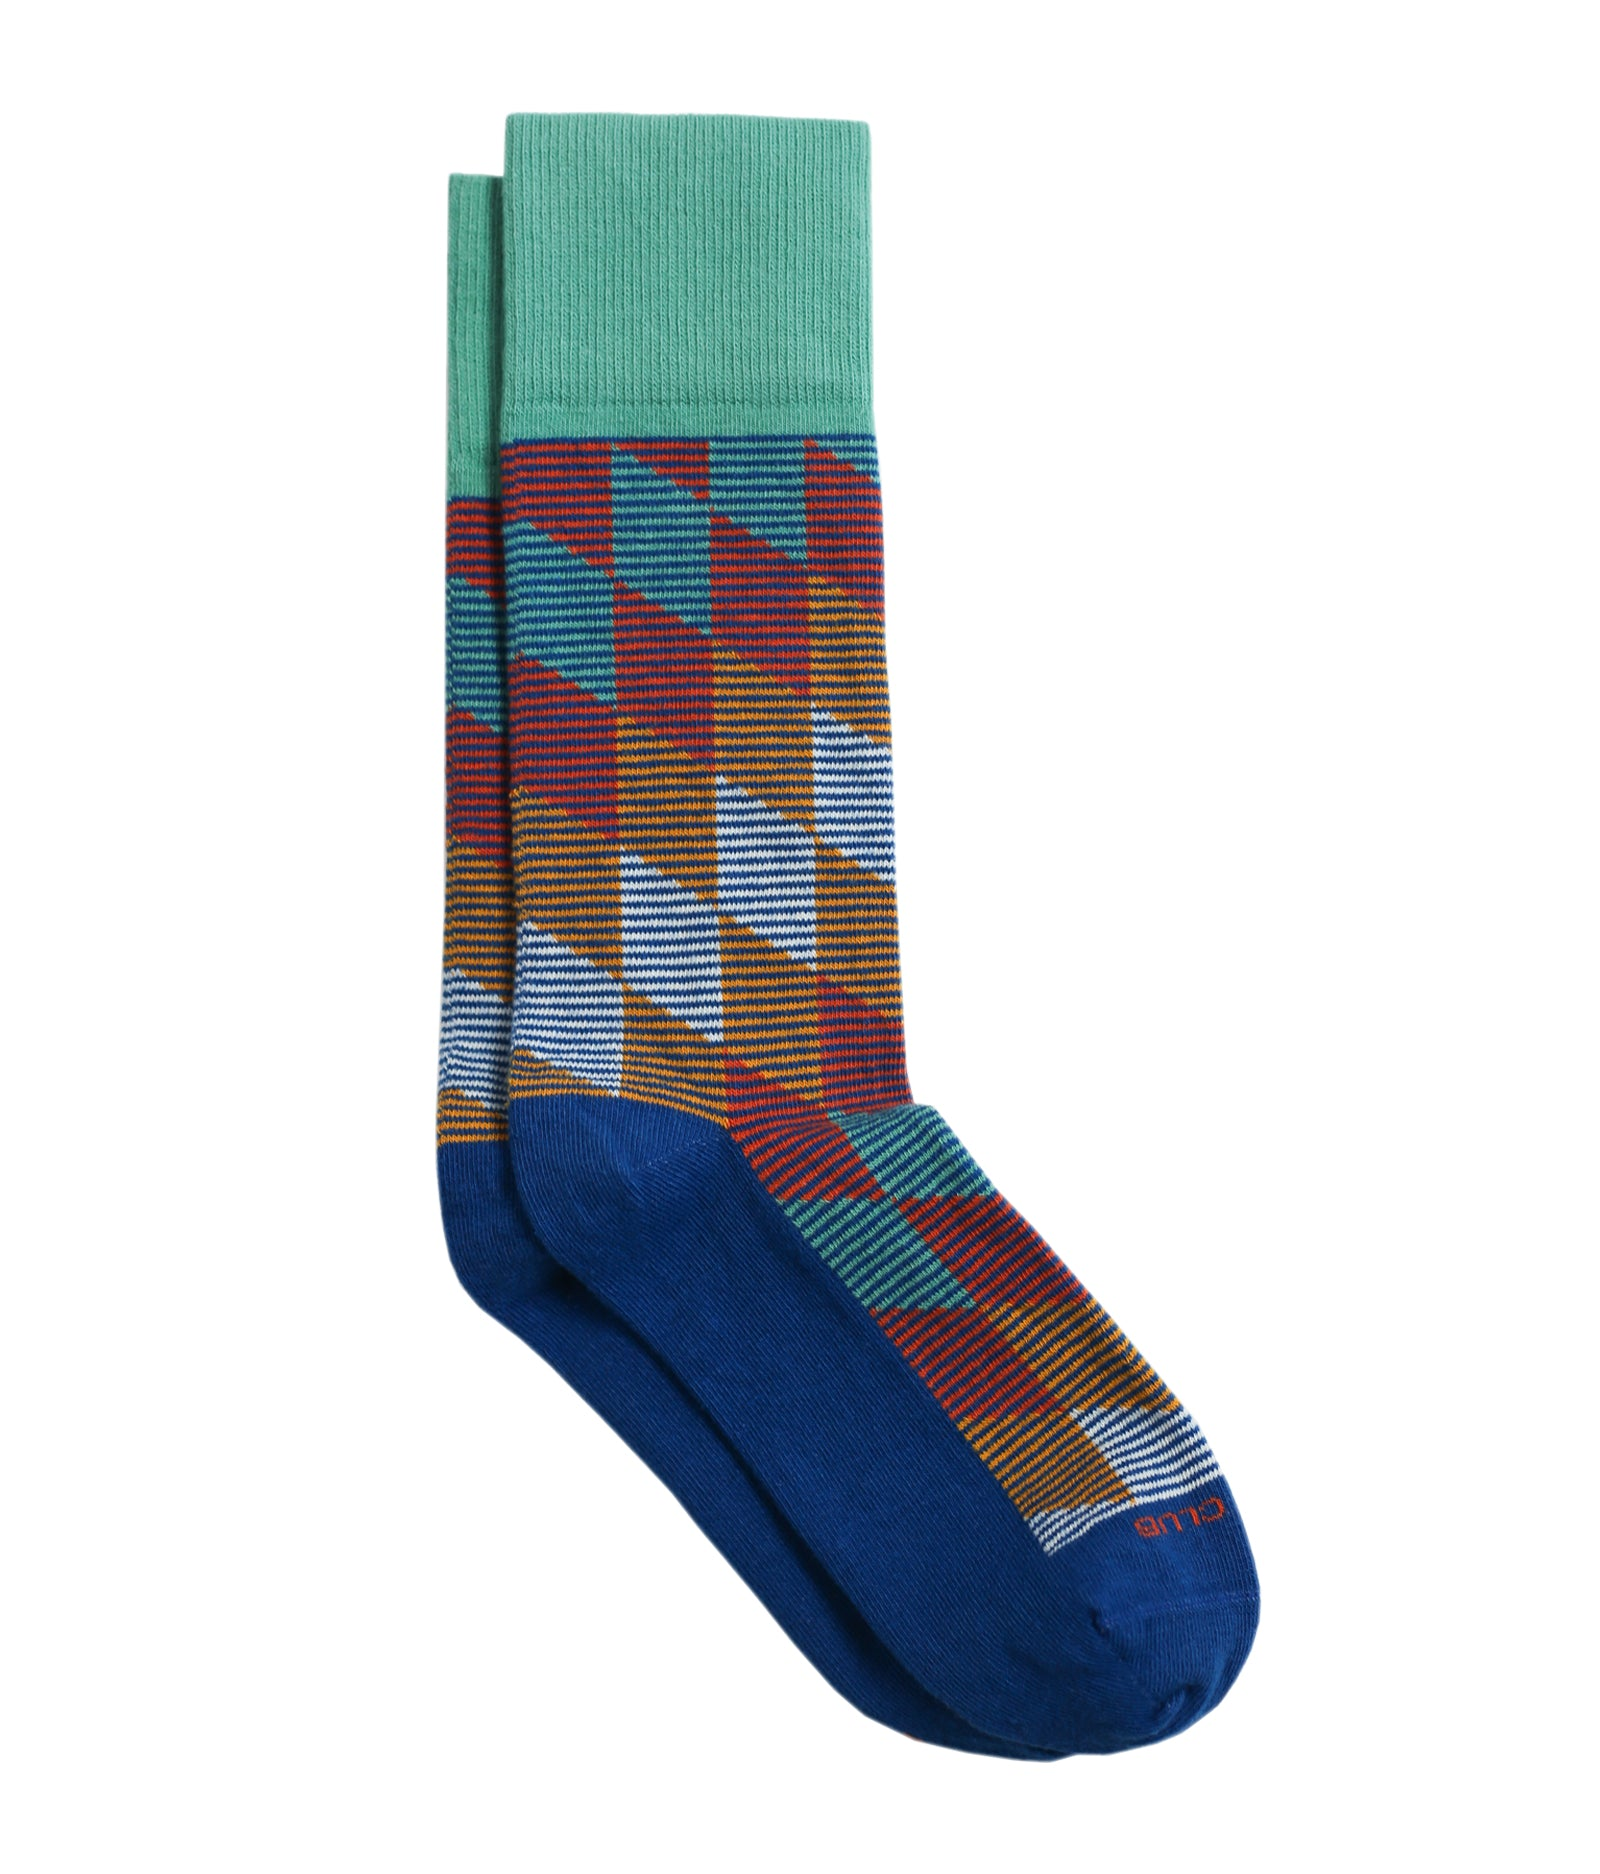 The Harlequin - Lagoon - Sock Club Store